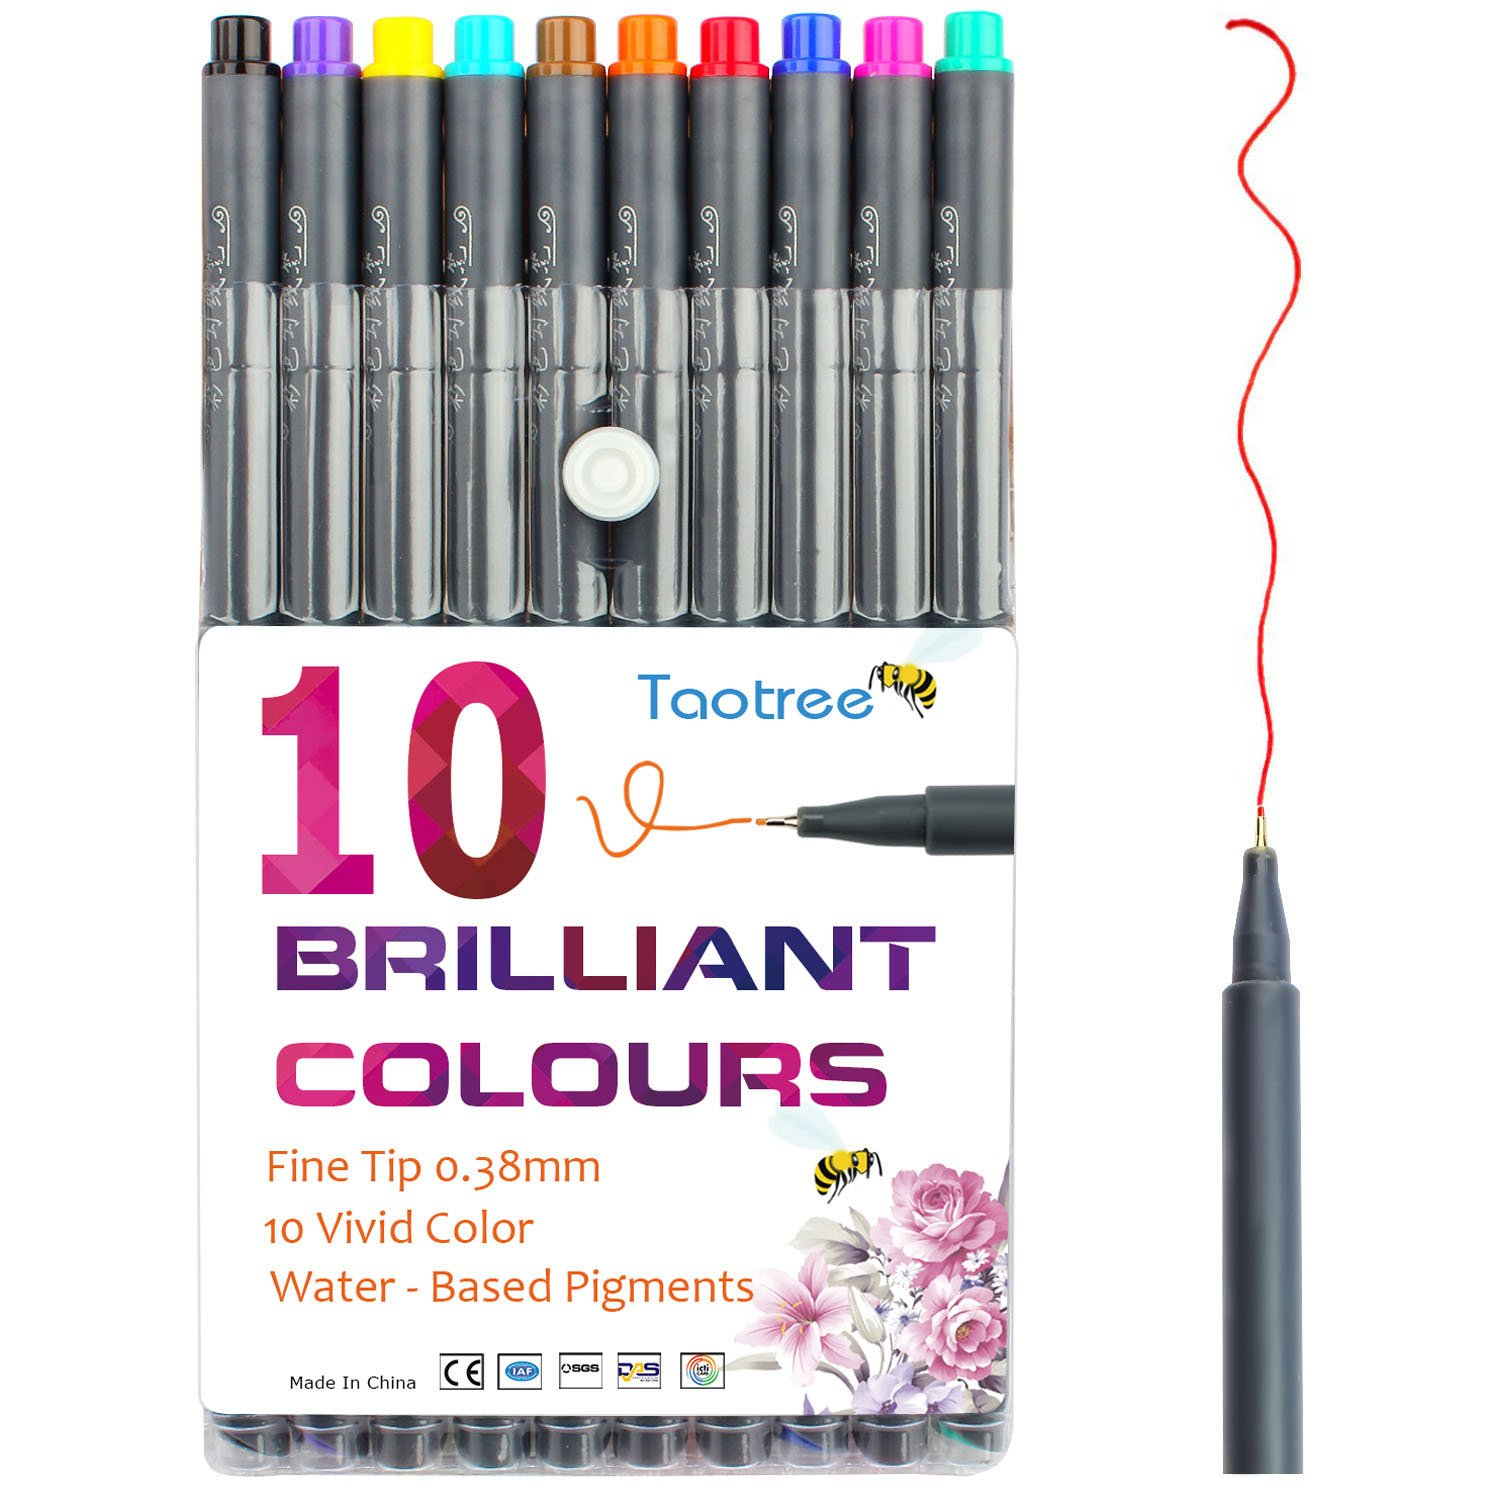 Taotree Fineliner Pens Coloured Set Fine Point 0.38mm in 10 Assorted Colours No Duplicates for Bullet Journal Artists Fine-Ink Drawings and Adult Colouring Books (10 Fineliner Pens)